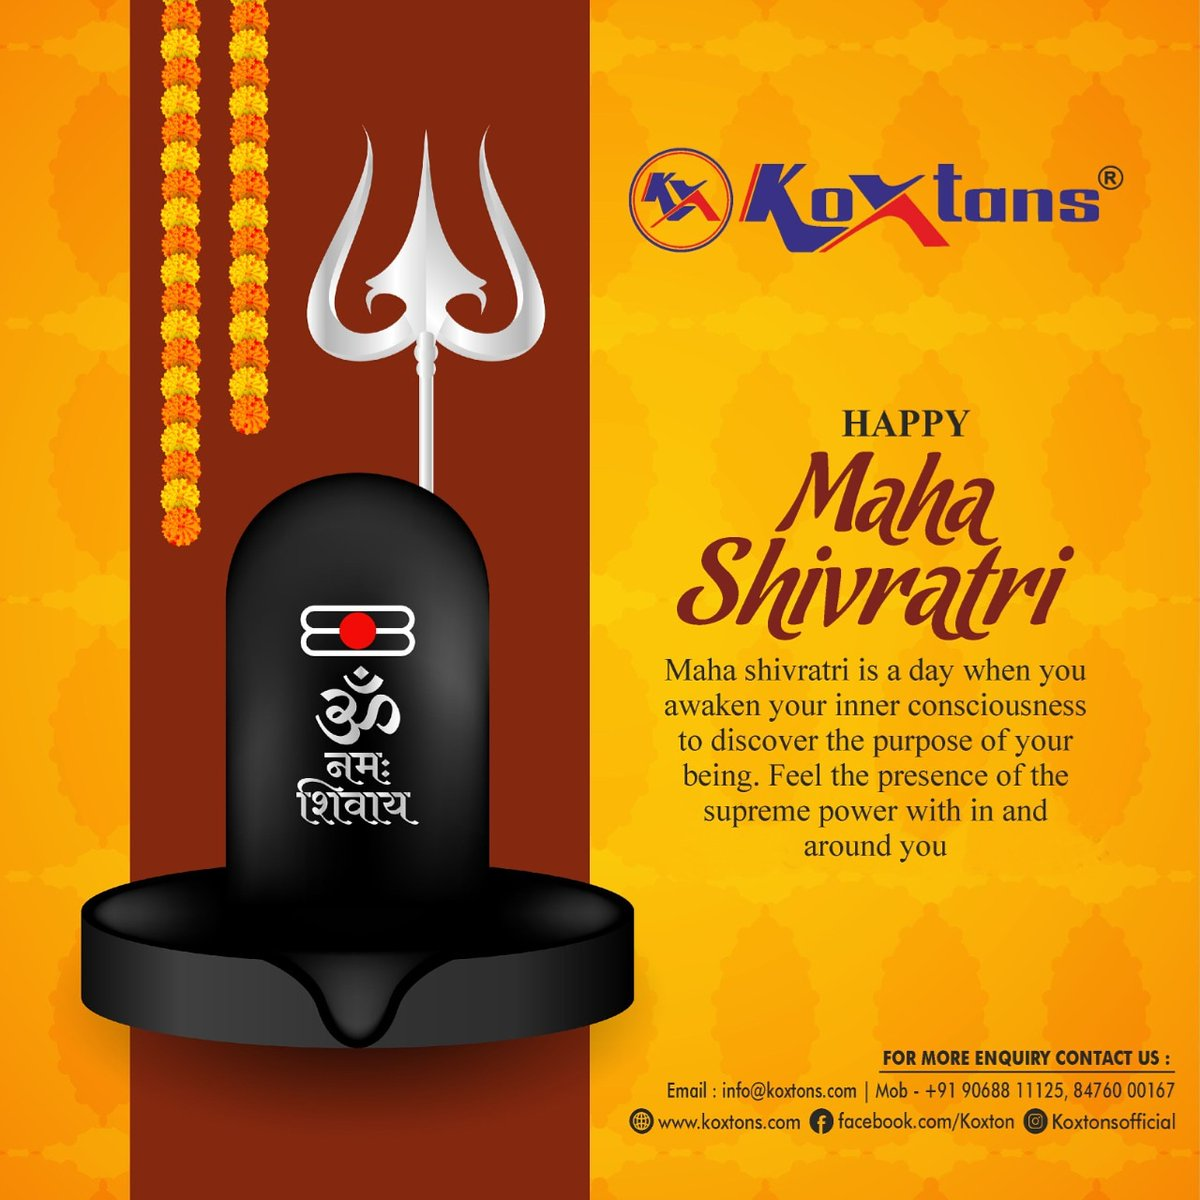 May the blessings of Lord Shiva be the harbinger of peace, prosperity and harmony in your life. Koxtons Sports wishes you a very Happy Maha Shivratri.🙏✨ . . . #koxtonsportsindia #koxtonsports #koxtons #mahashivratri #happymahashivratri #mahashivratri2021 #kailash #lordshiva https://t.co/yWi1wpJ5xS